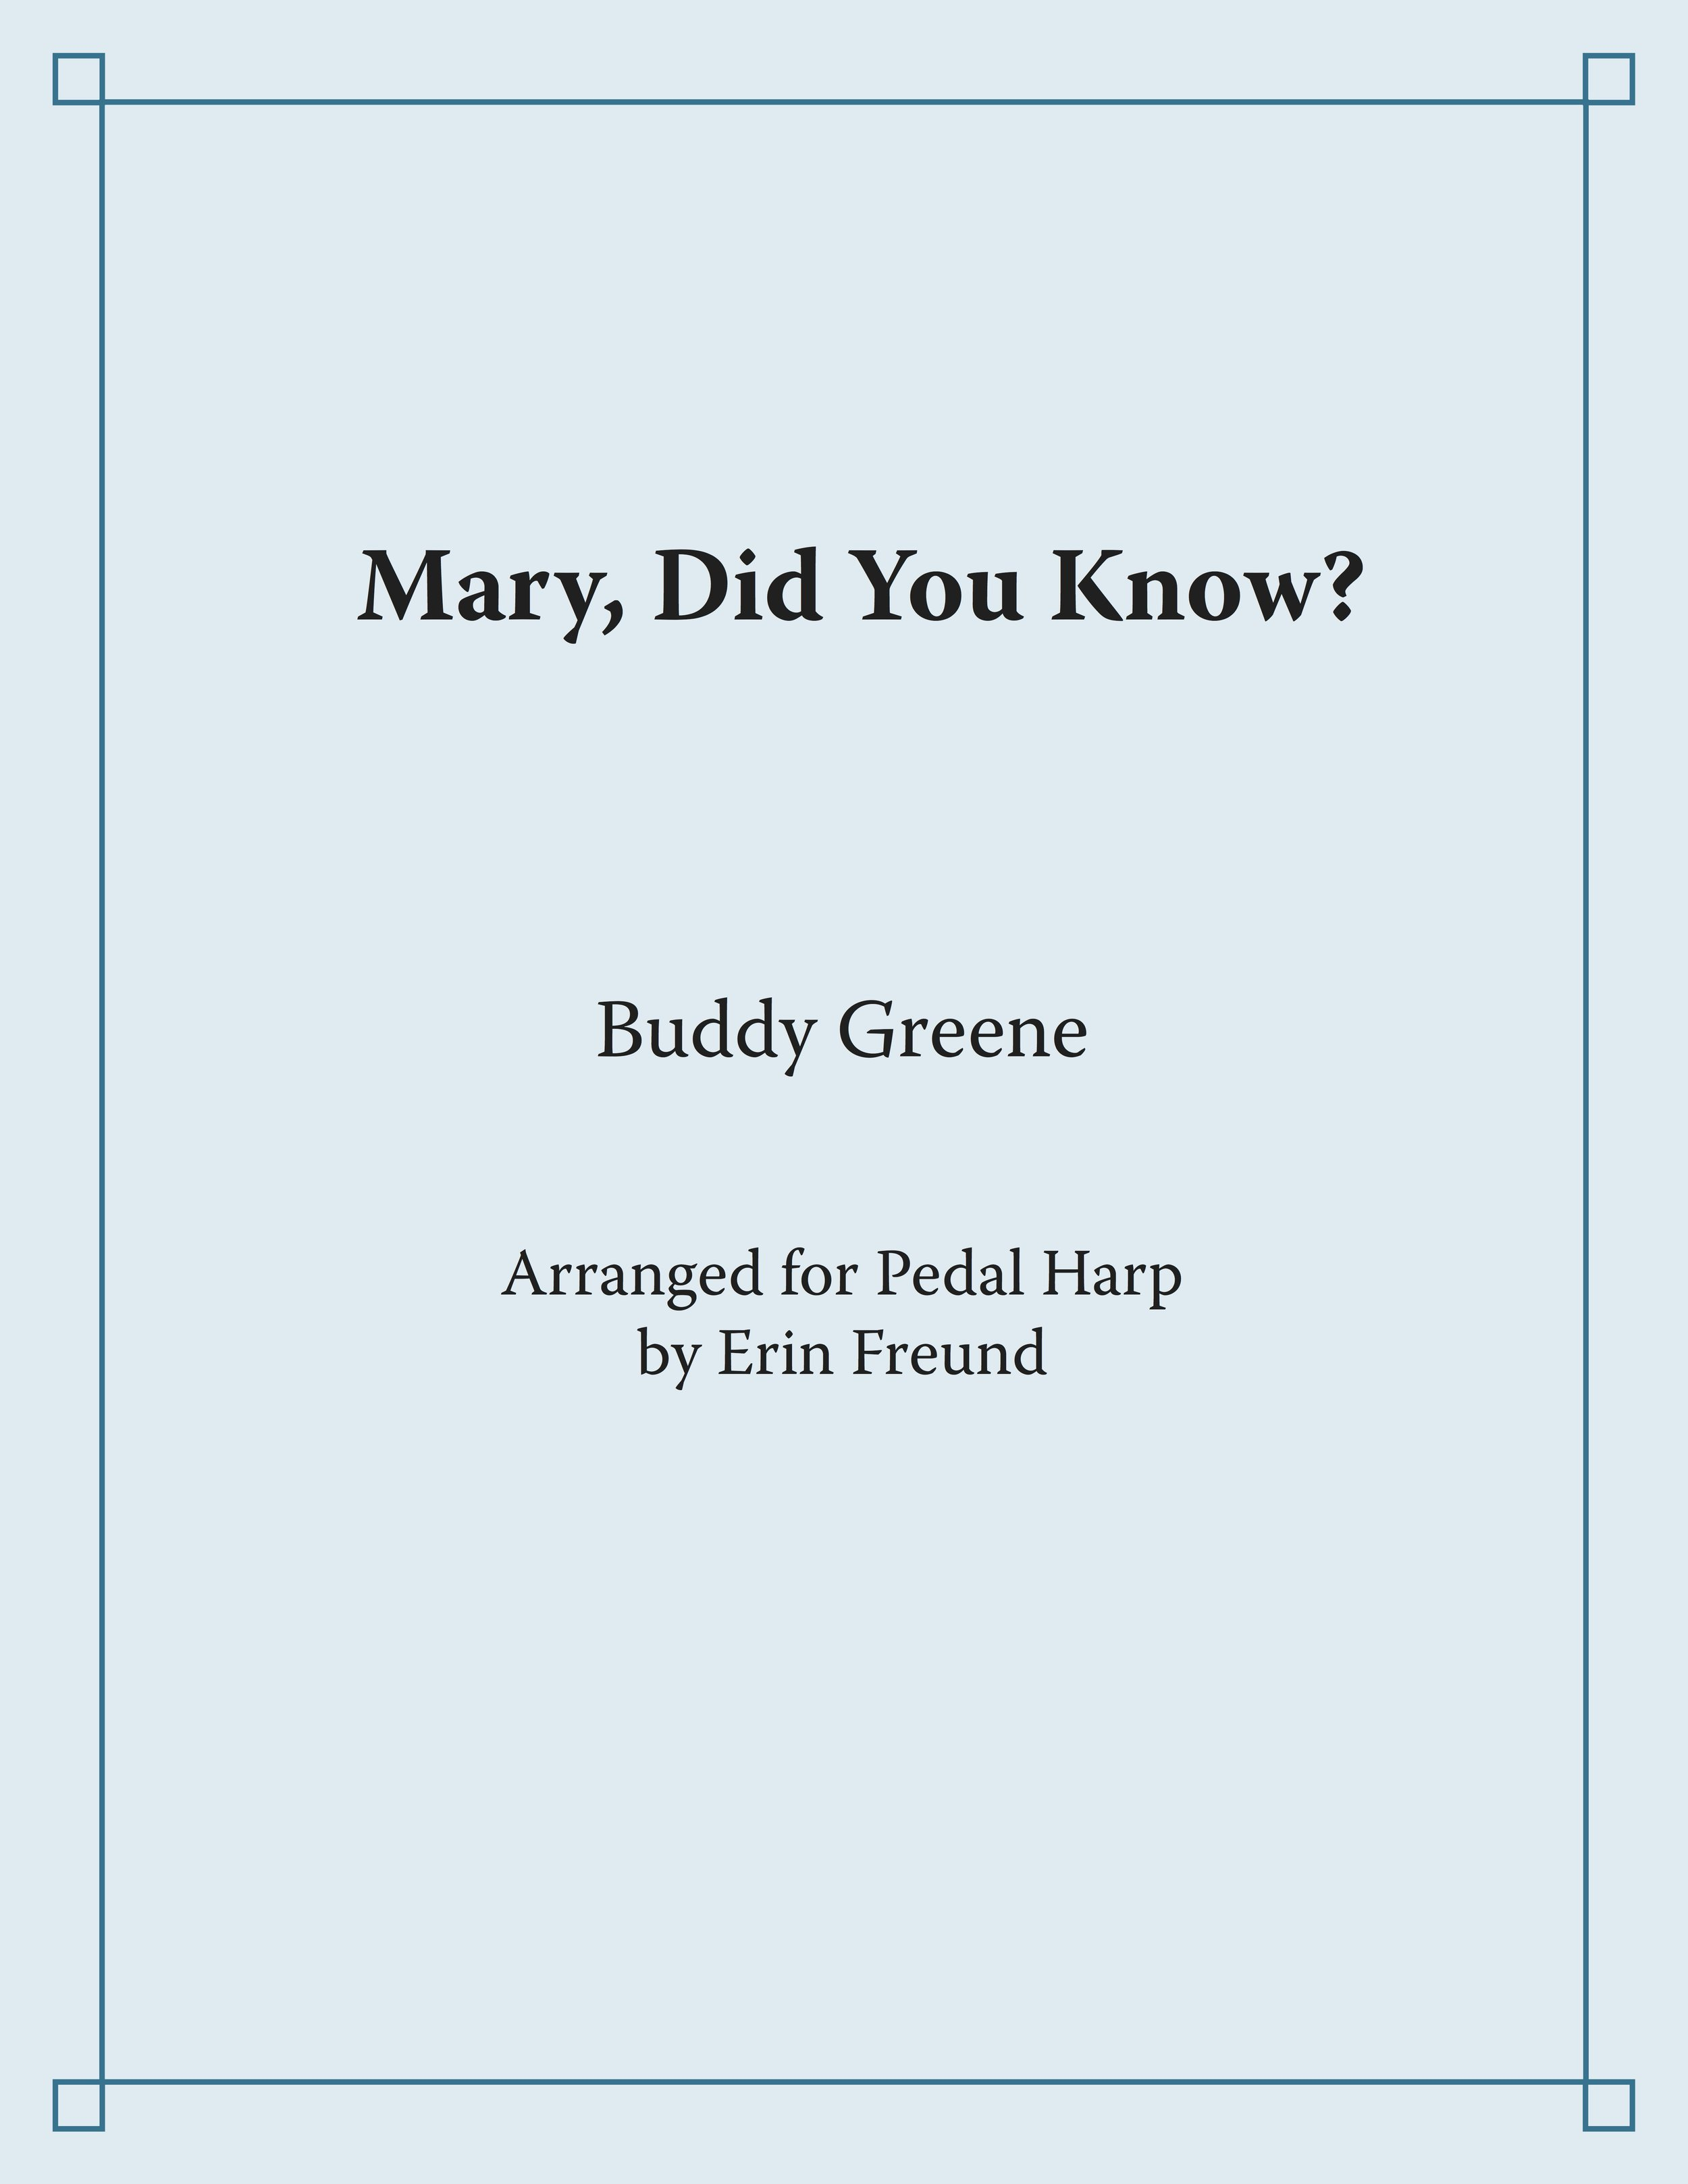 Mary Did You Know cover only.jpg